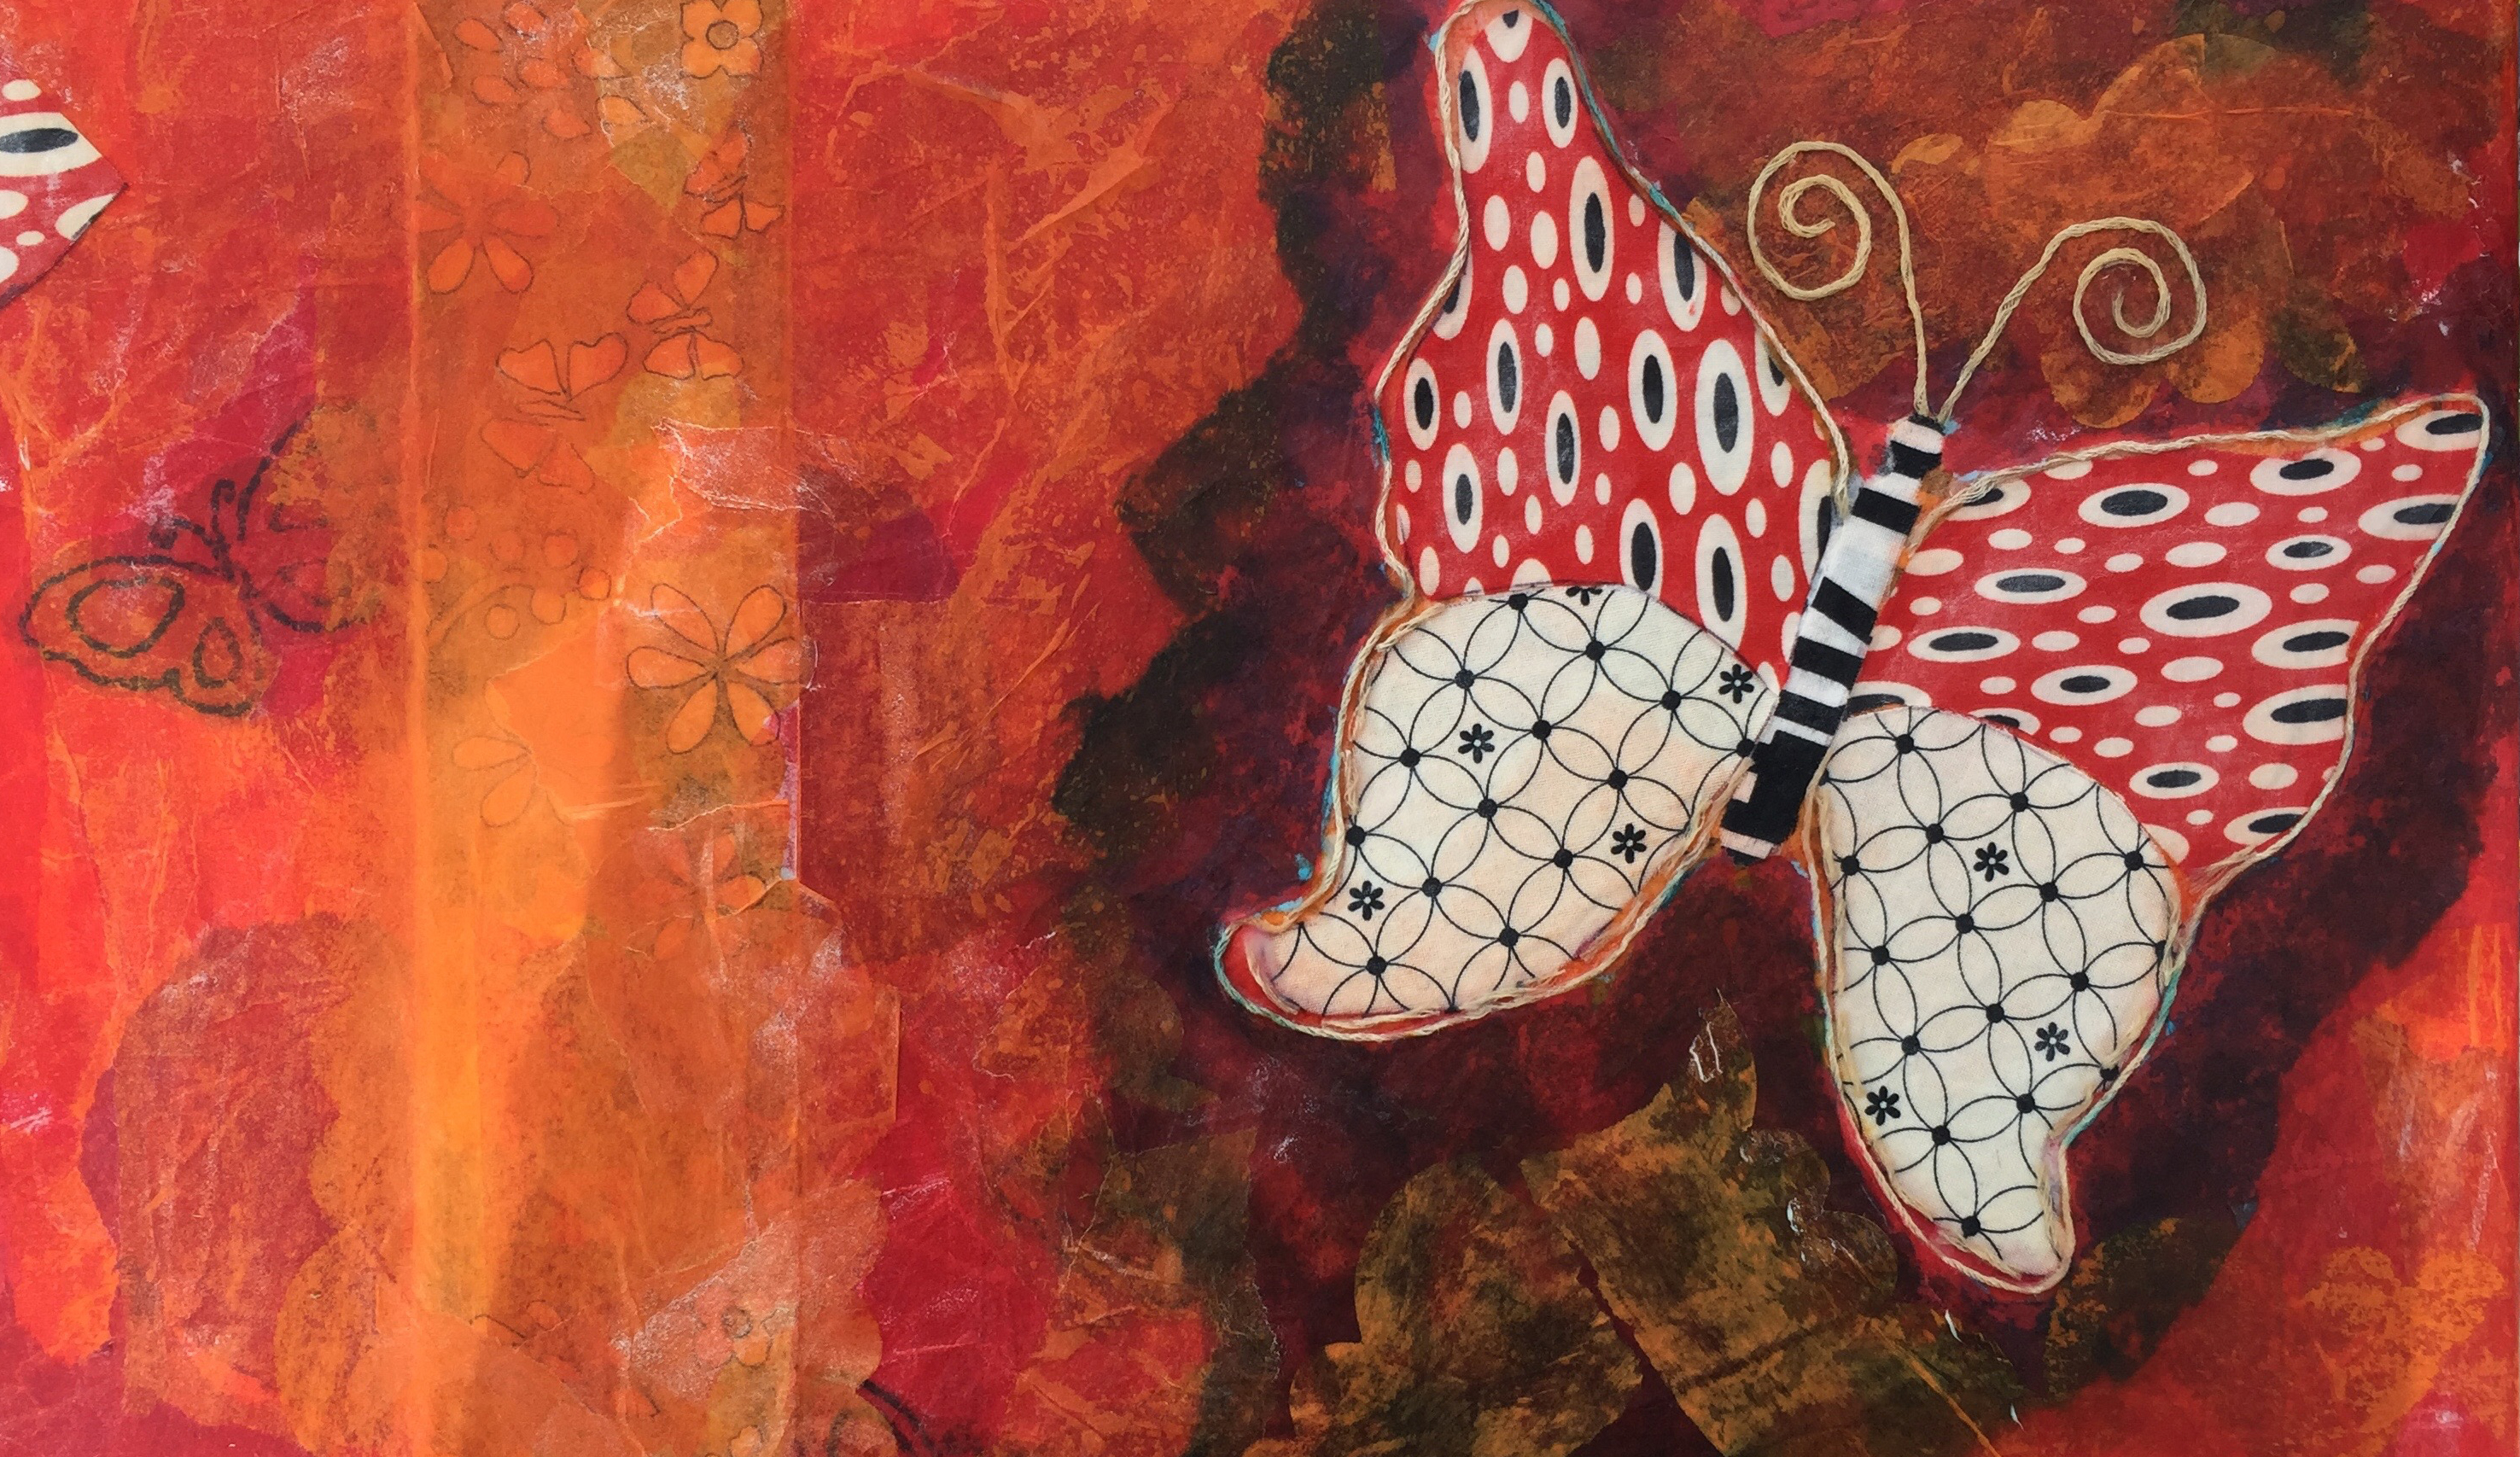 NEW! Fabric Fun - Mixed Media Painting with Paper, Cloth & Thread w/Sandy Coleman (Adults 17+)